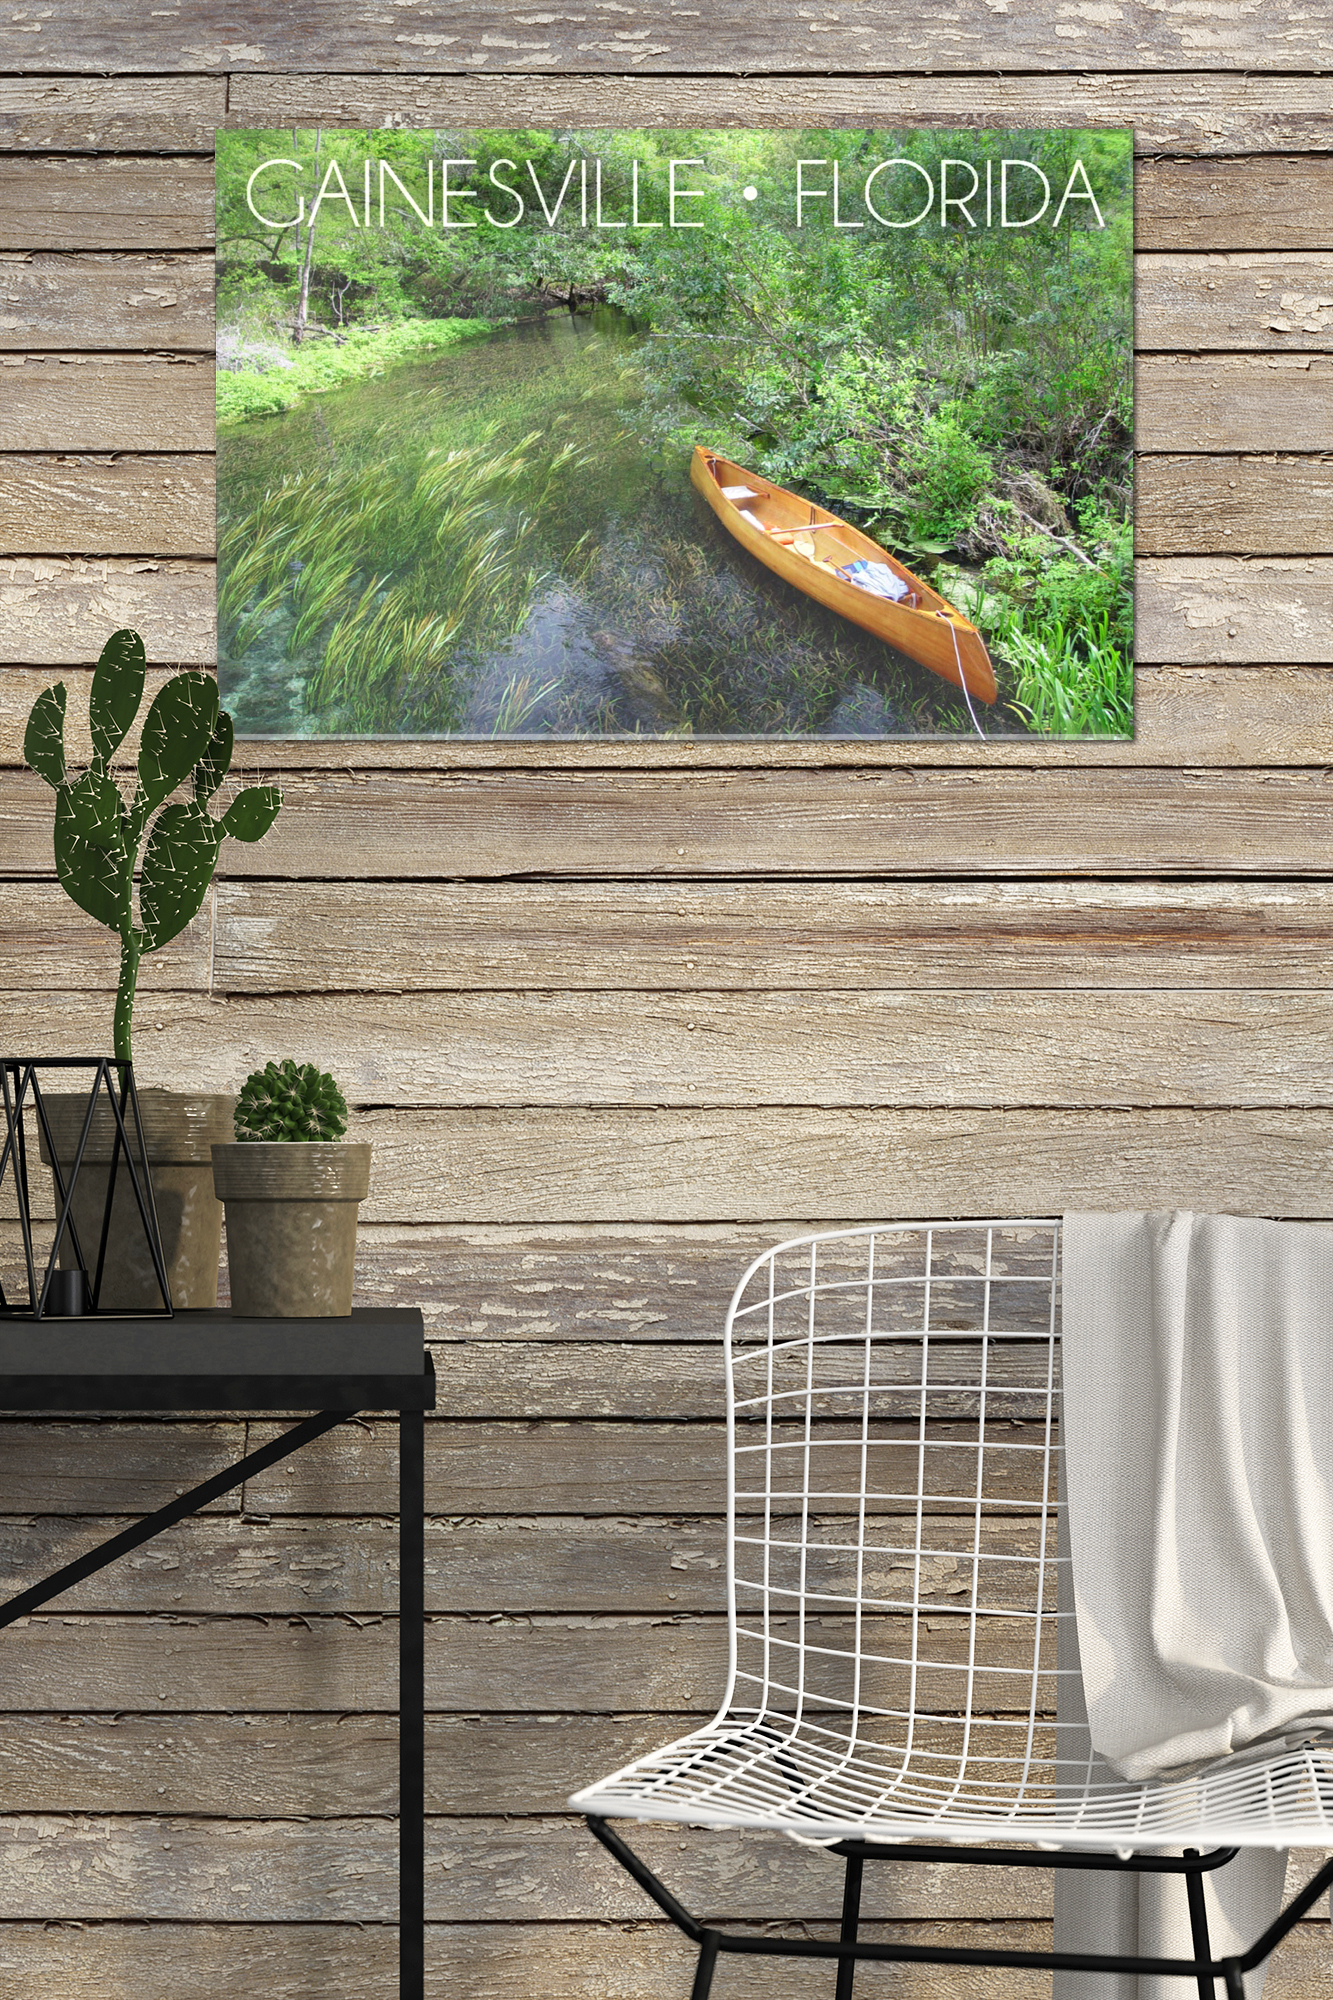 Gainesville florida headwaters of the ichetucknee lantern press photography 12x8 acrylic wall art gallery quality walmart com